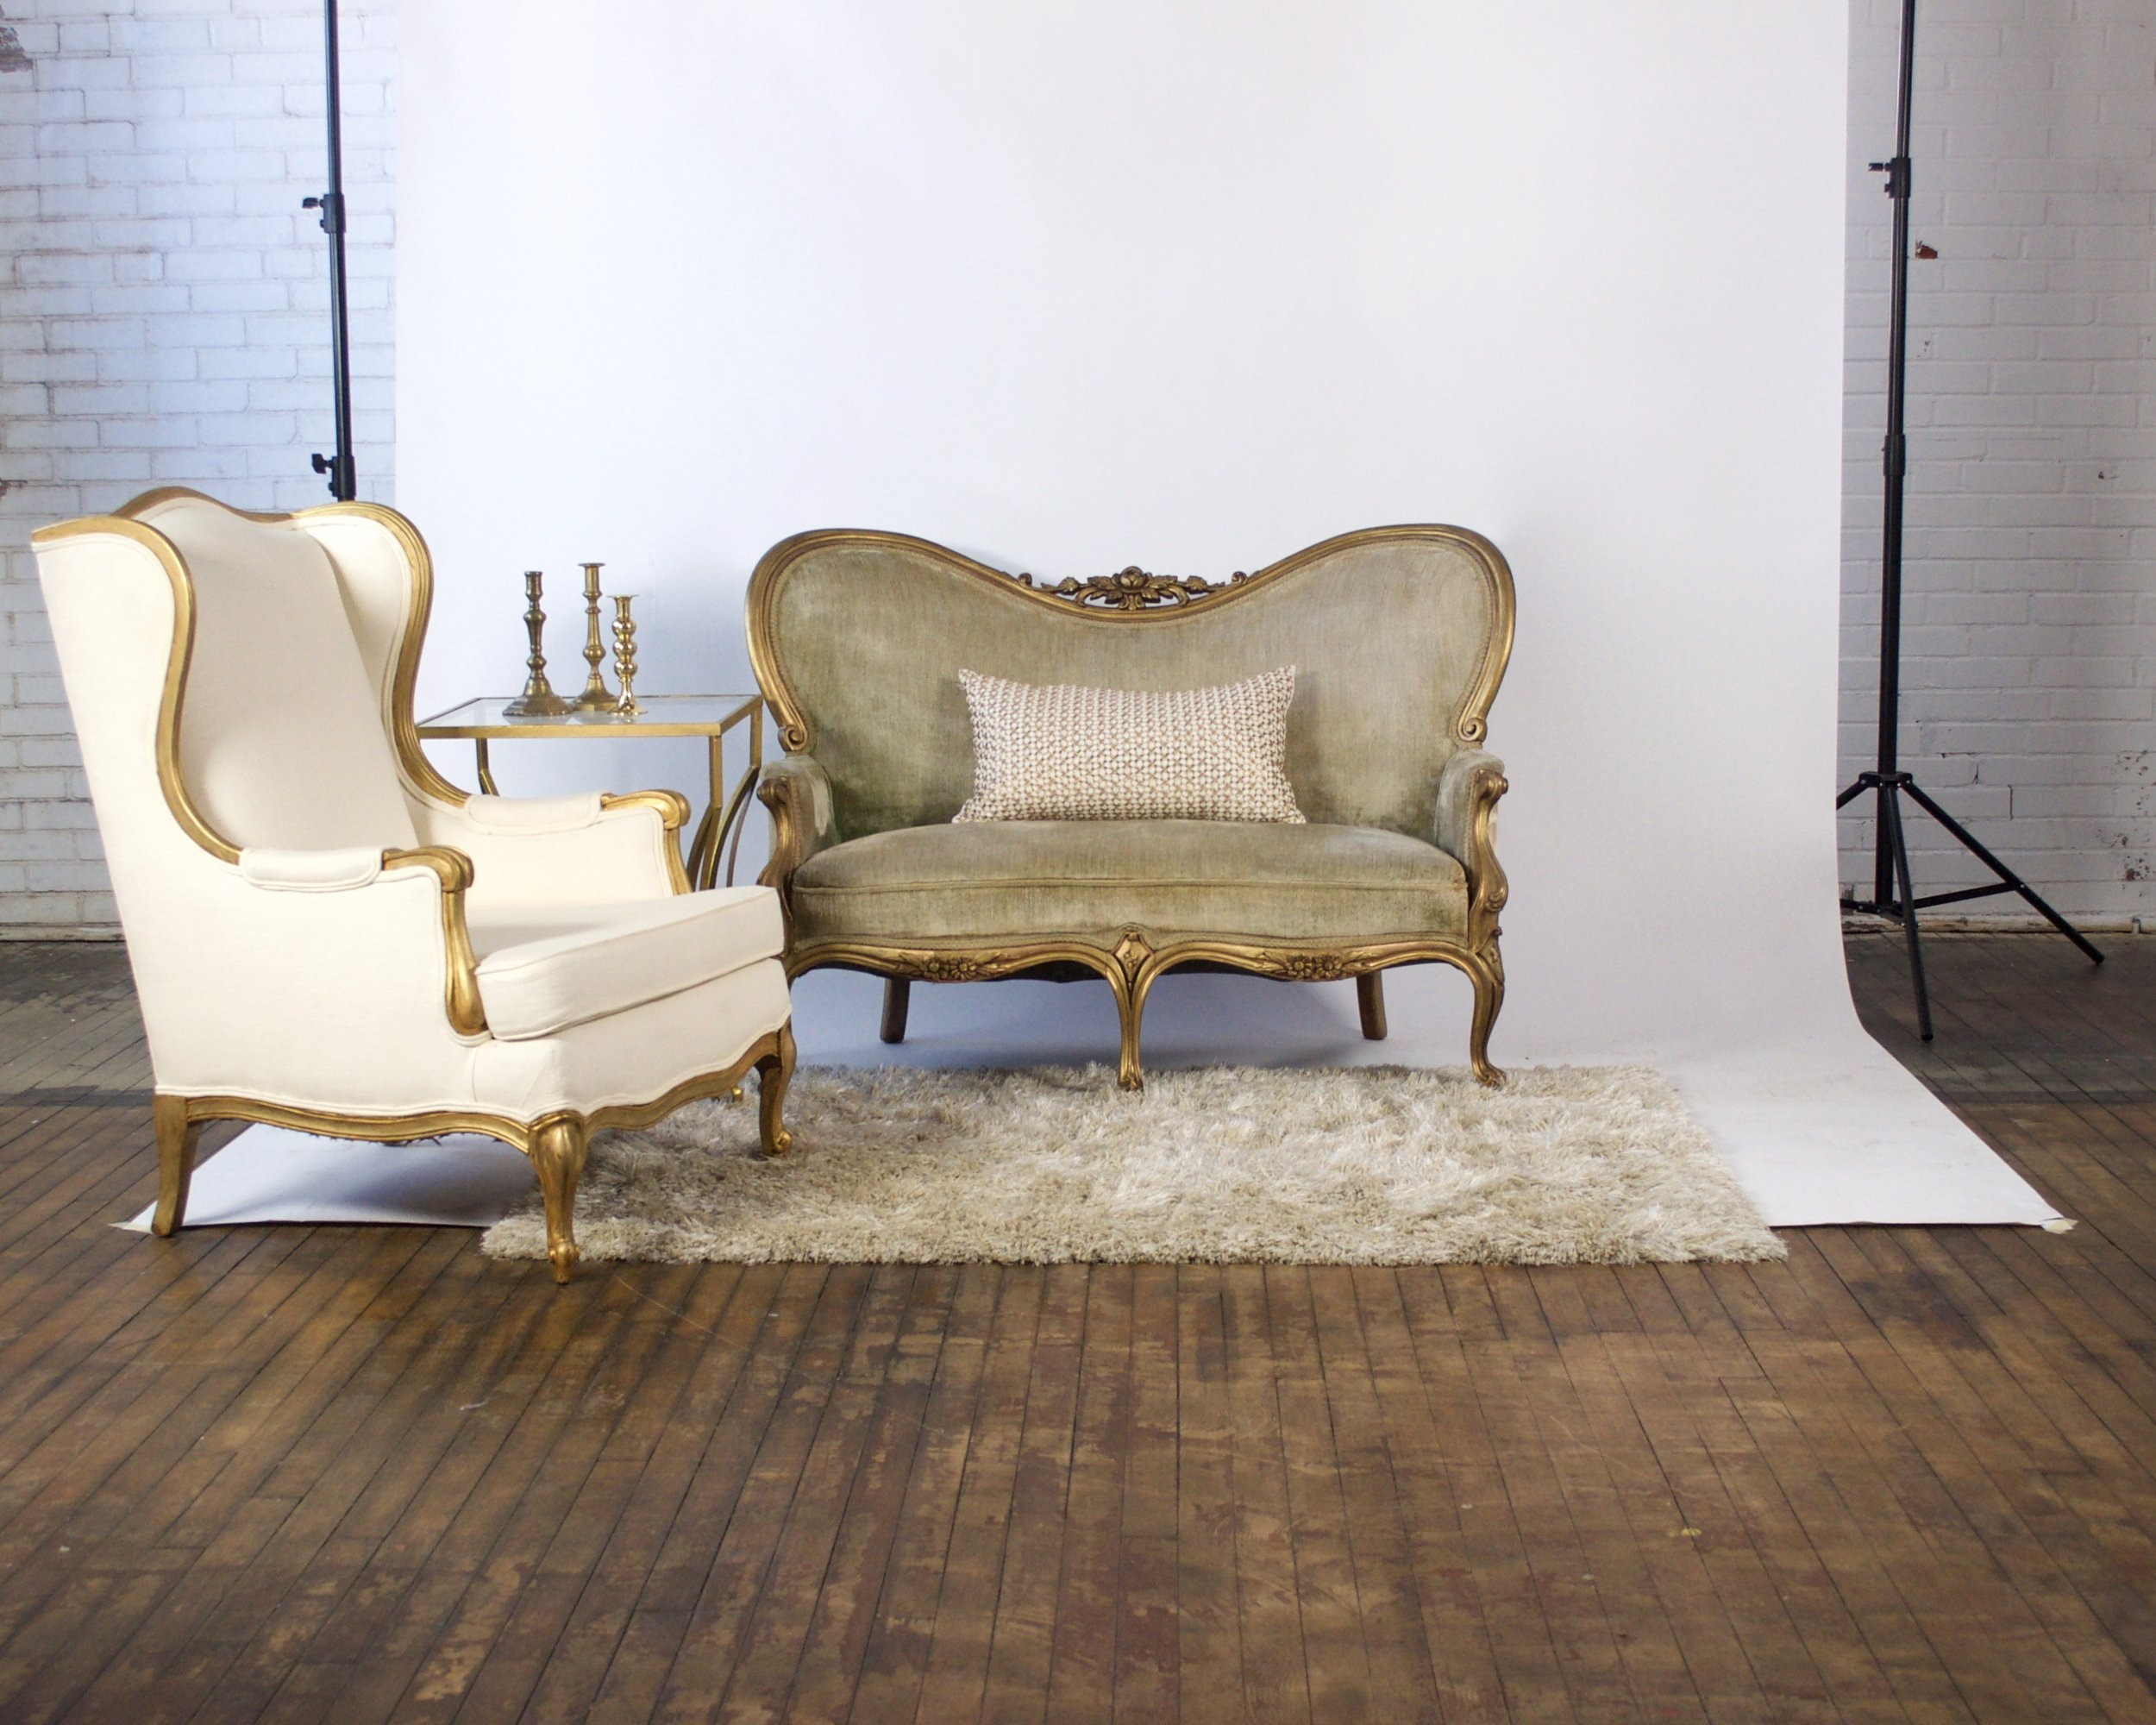 Goldie and Golden Ticket Petite - featuring shaggy champagne rug and gold square top table